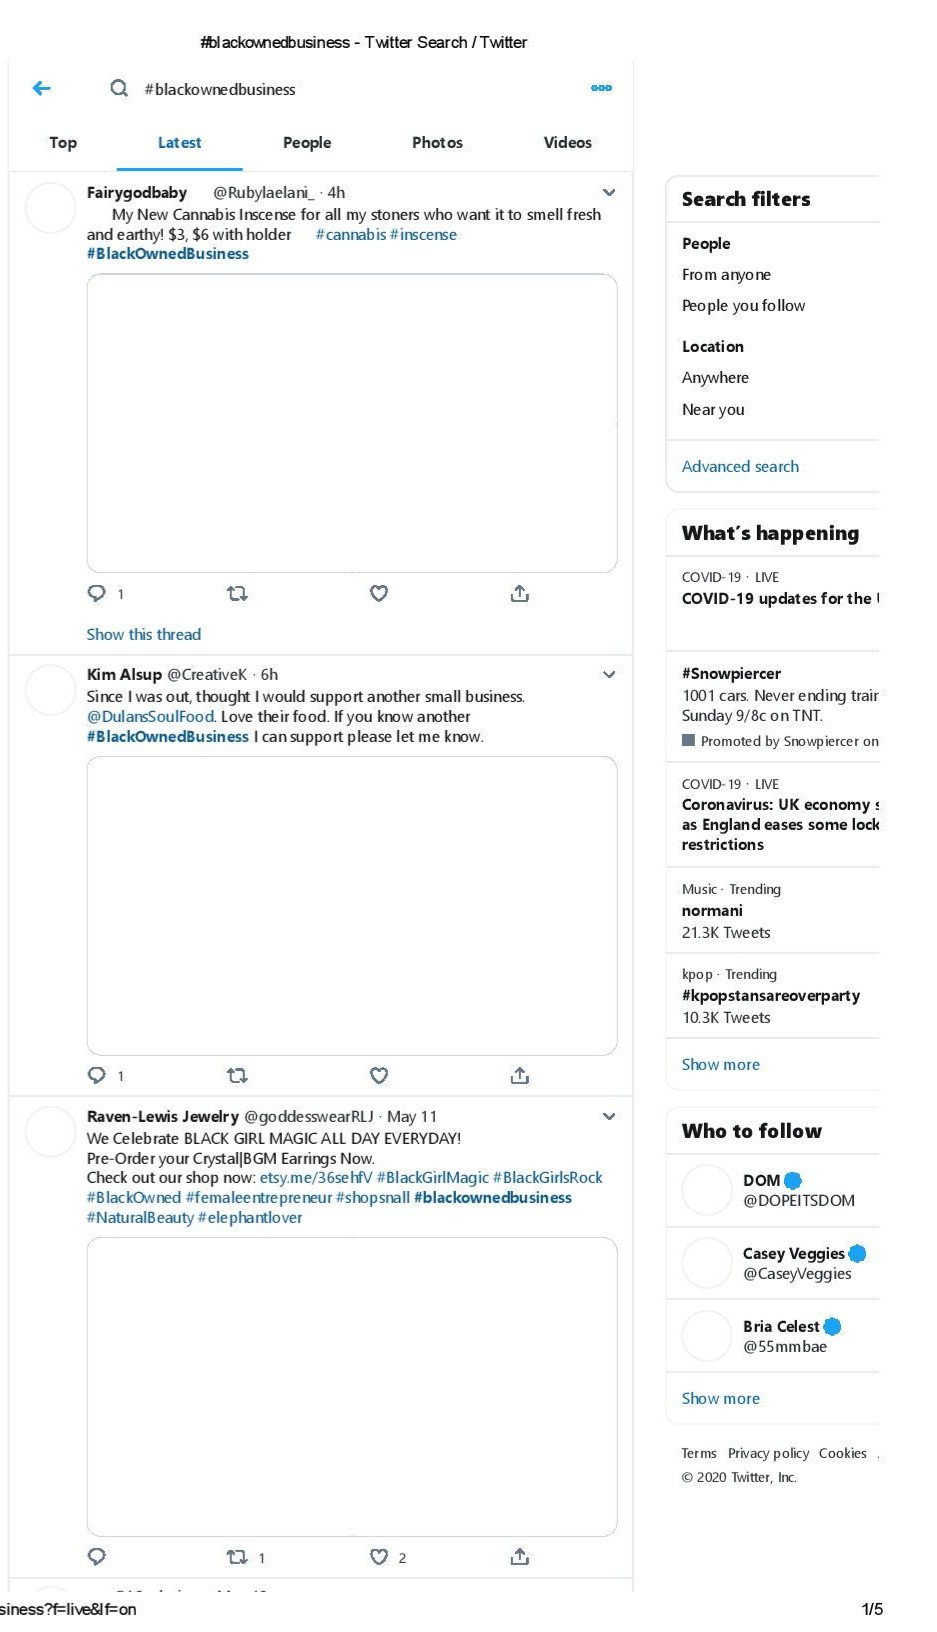 SCREENSHOT OF TWITTER FEED #BLACKOWNEDBUSINESS FROM DARIAN SMITH JR.'S FEED.